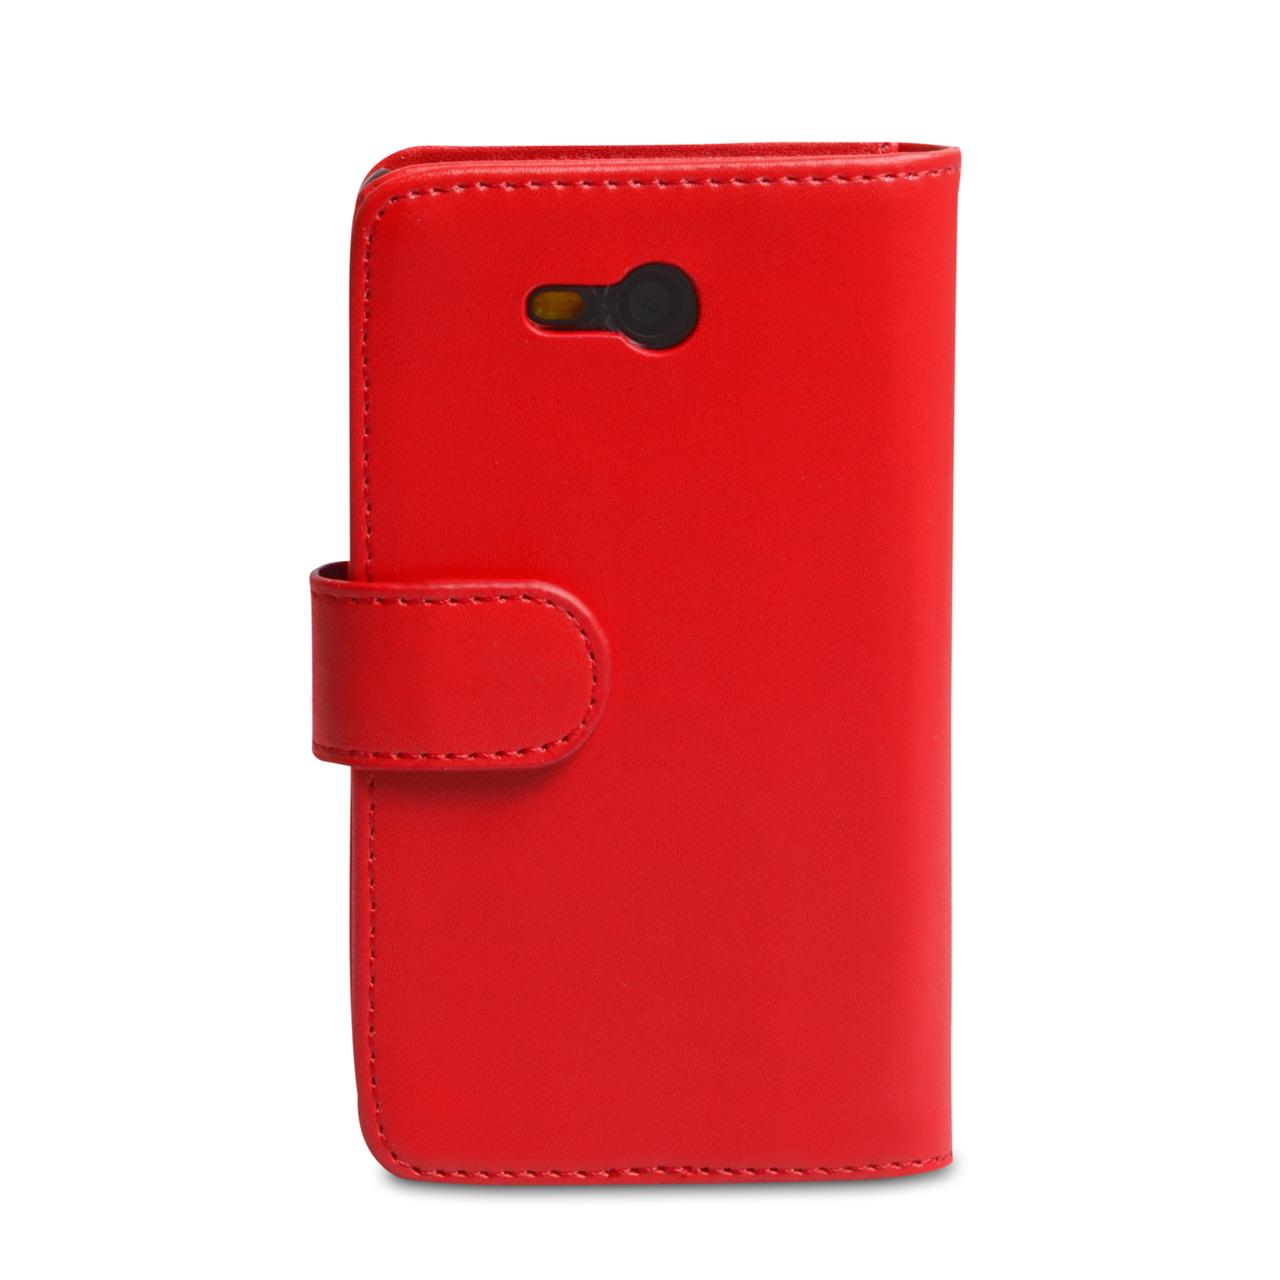 YouSave Accessories Nokia Lumia 820 Leather Effect Wallet Case - Red